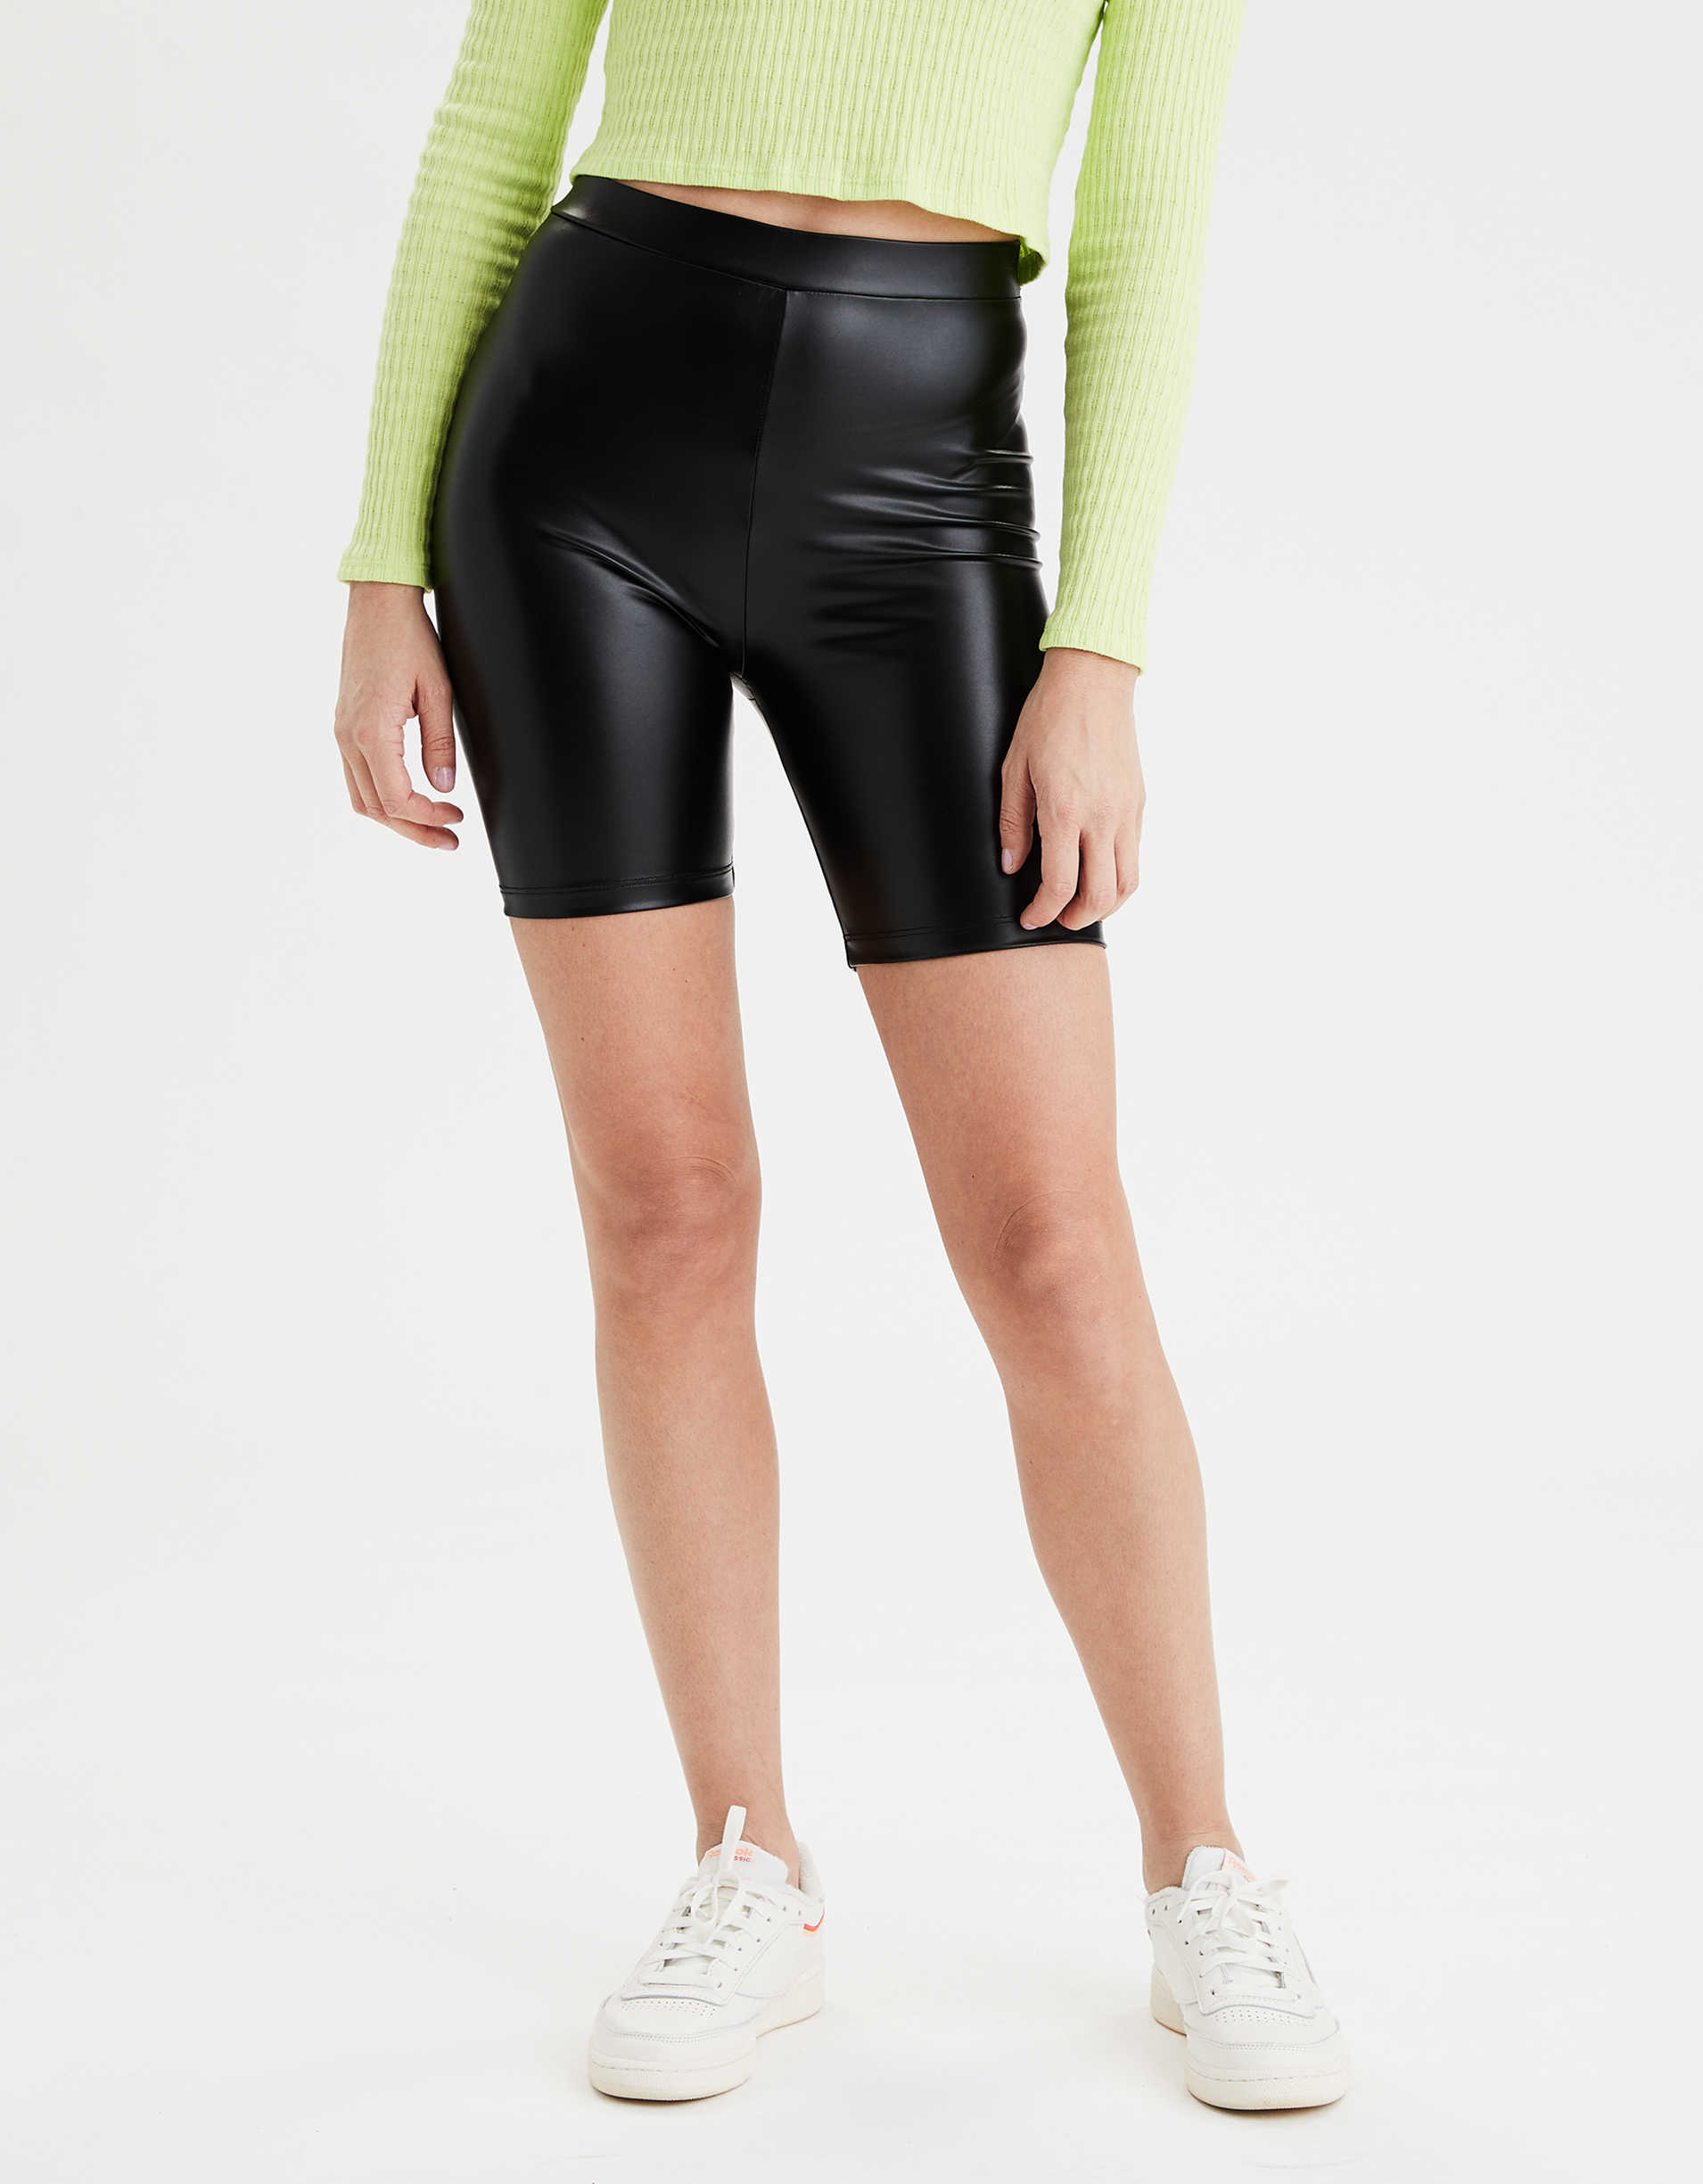 AE Highest-Rise Faux Leather Bike Short